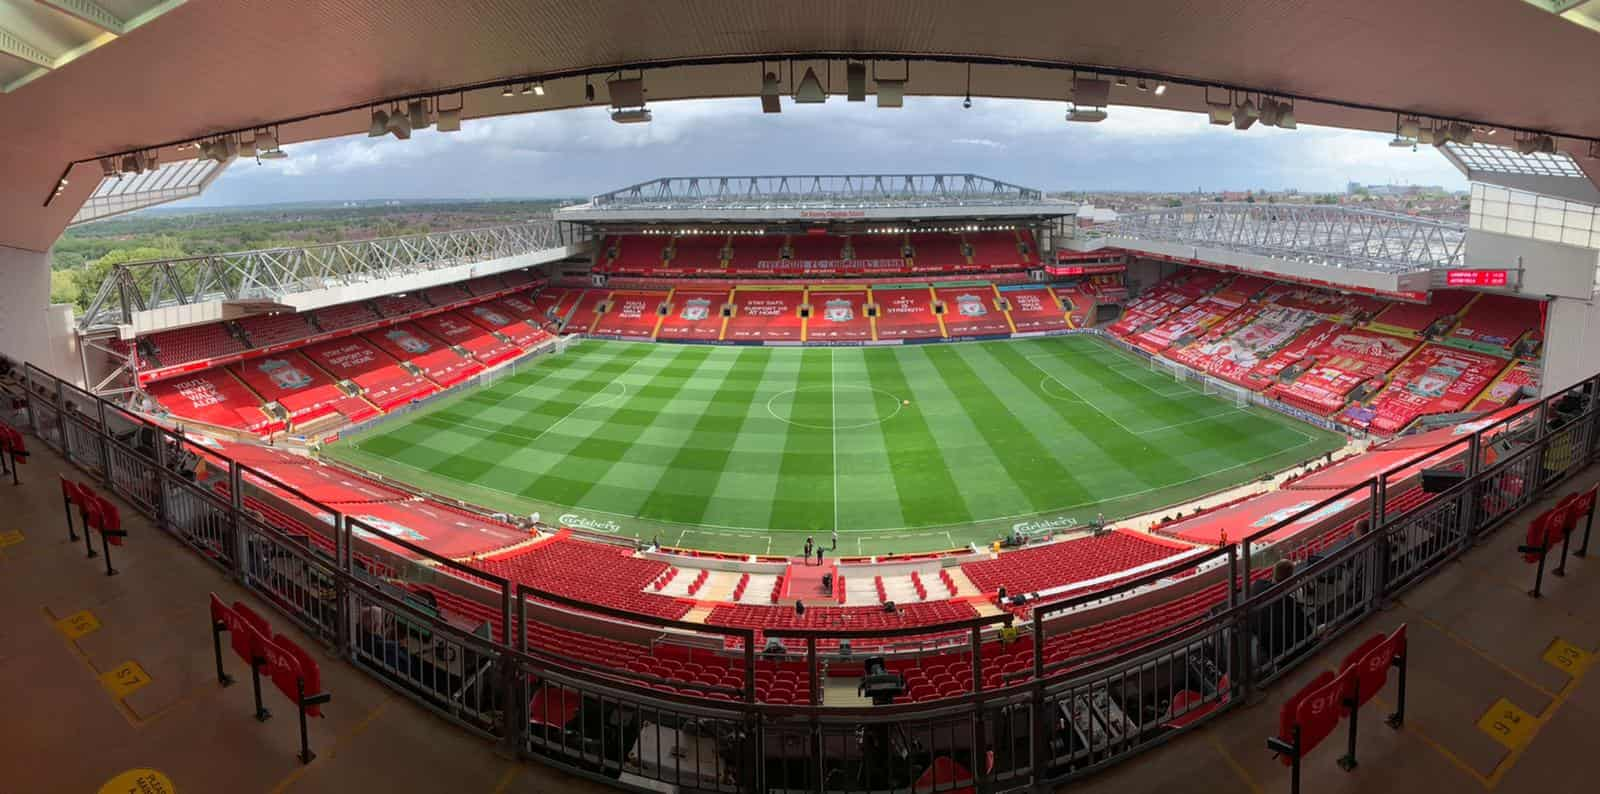 A view of Anfield Stadium from above.